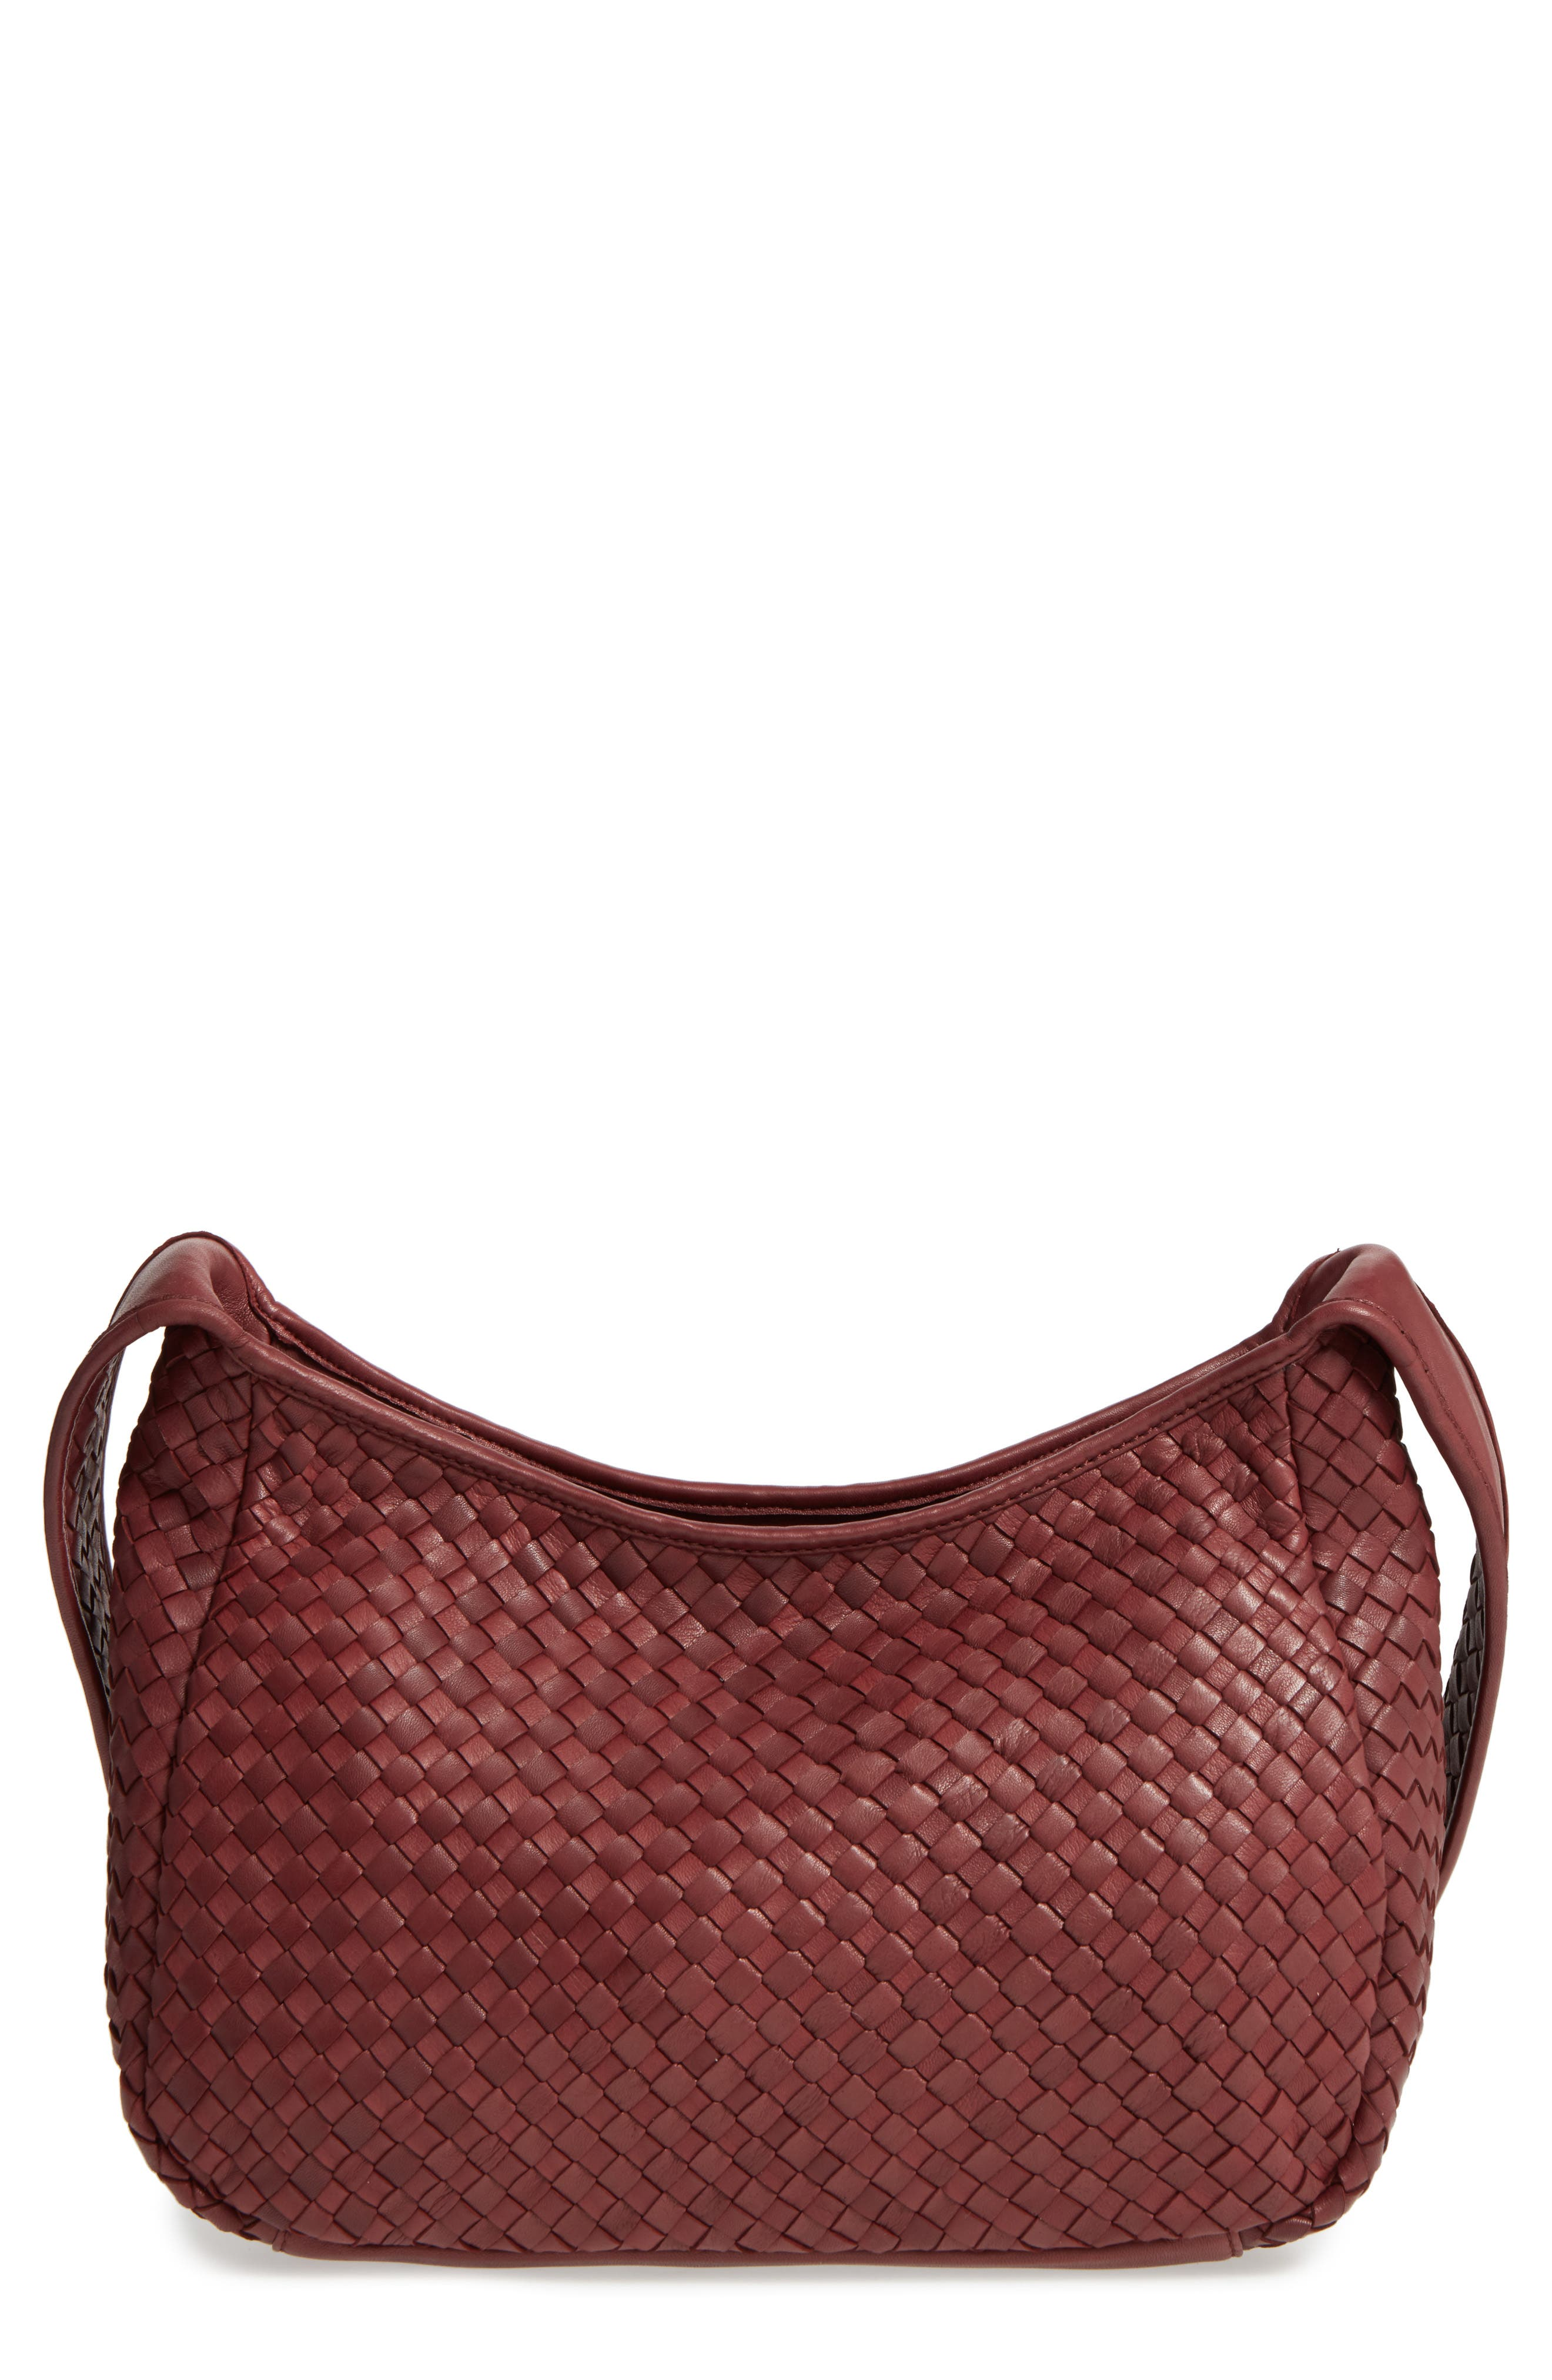 Alternate Image 1 Selected - Robert Zur Small Delia Leather Hobo